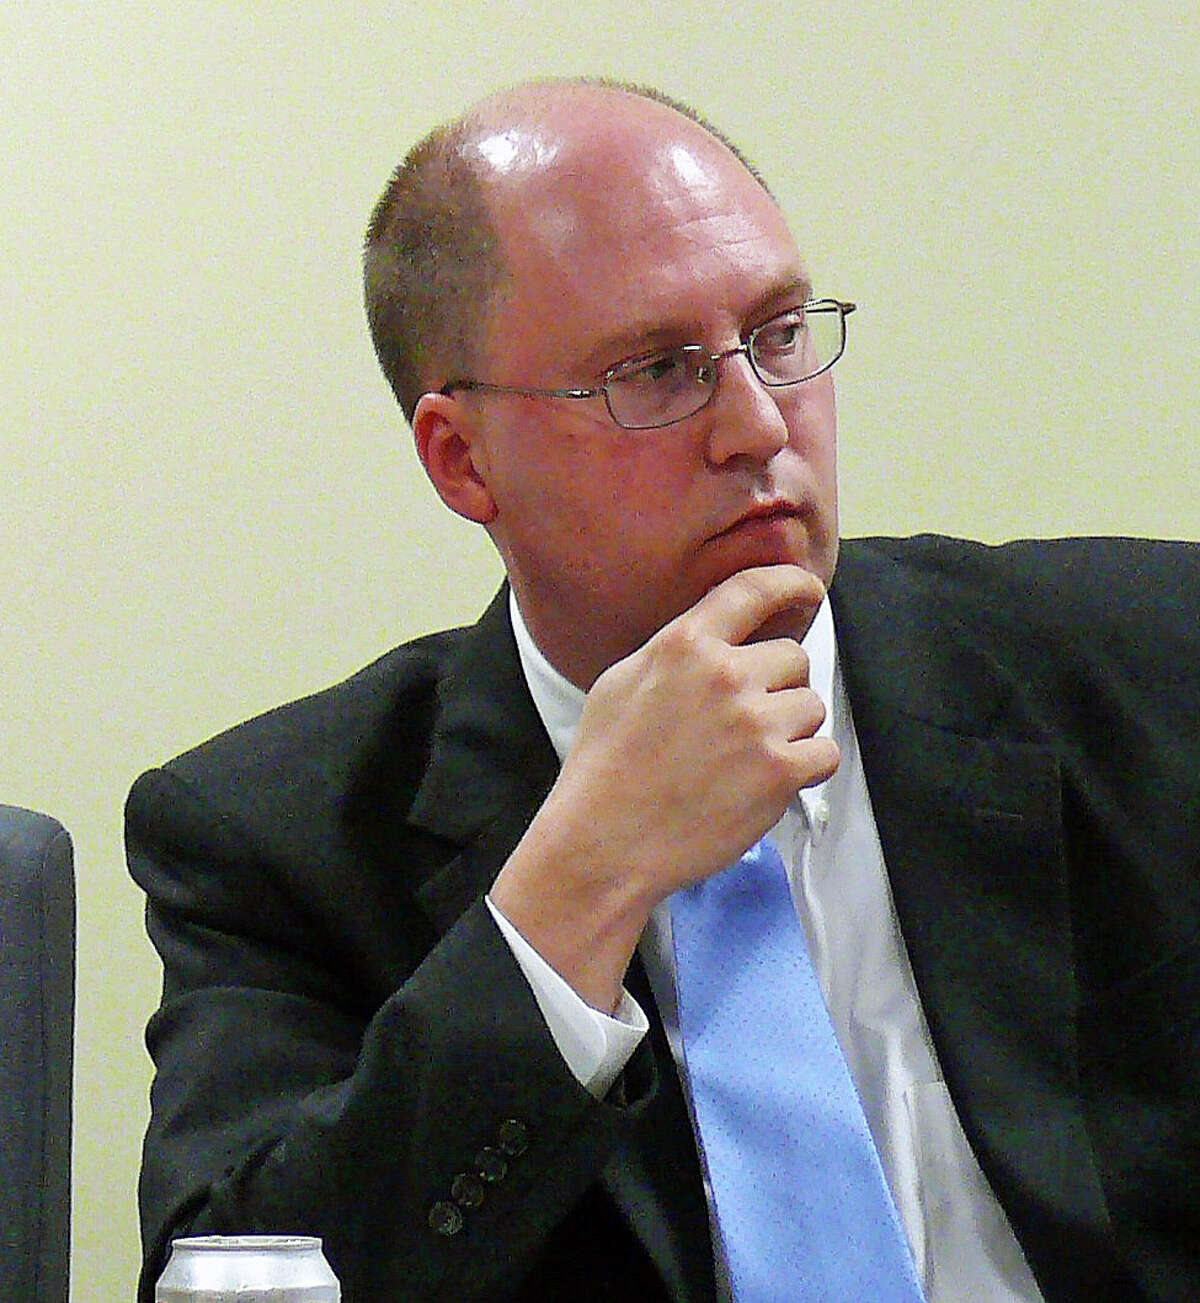 Board of Finance Vice Chairman Robert Bellitto, Jr. is interested in taking James Walsh's seat on the Board of Selectmen.